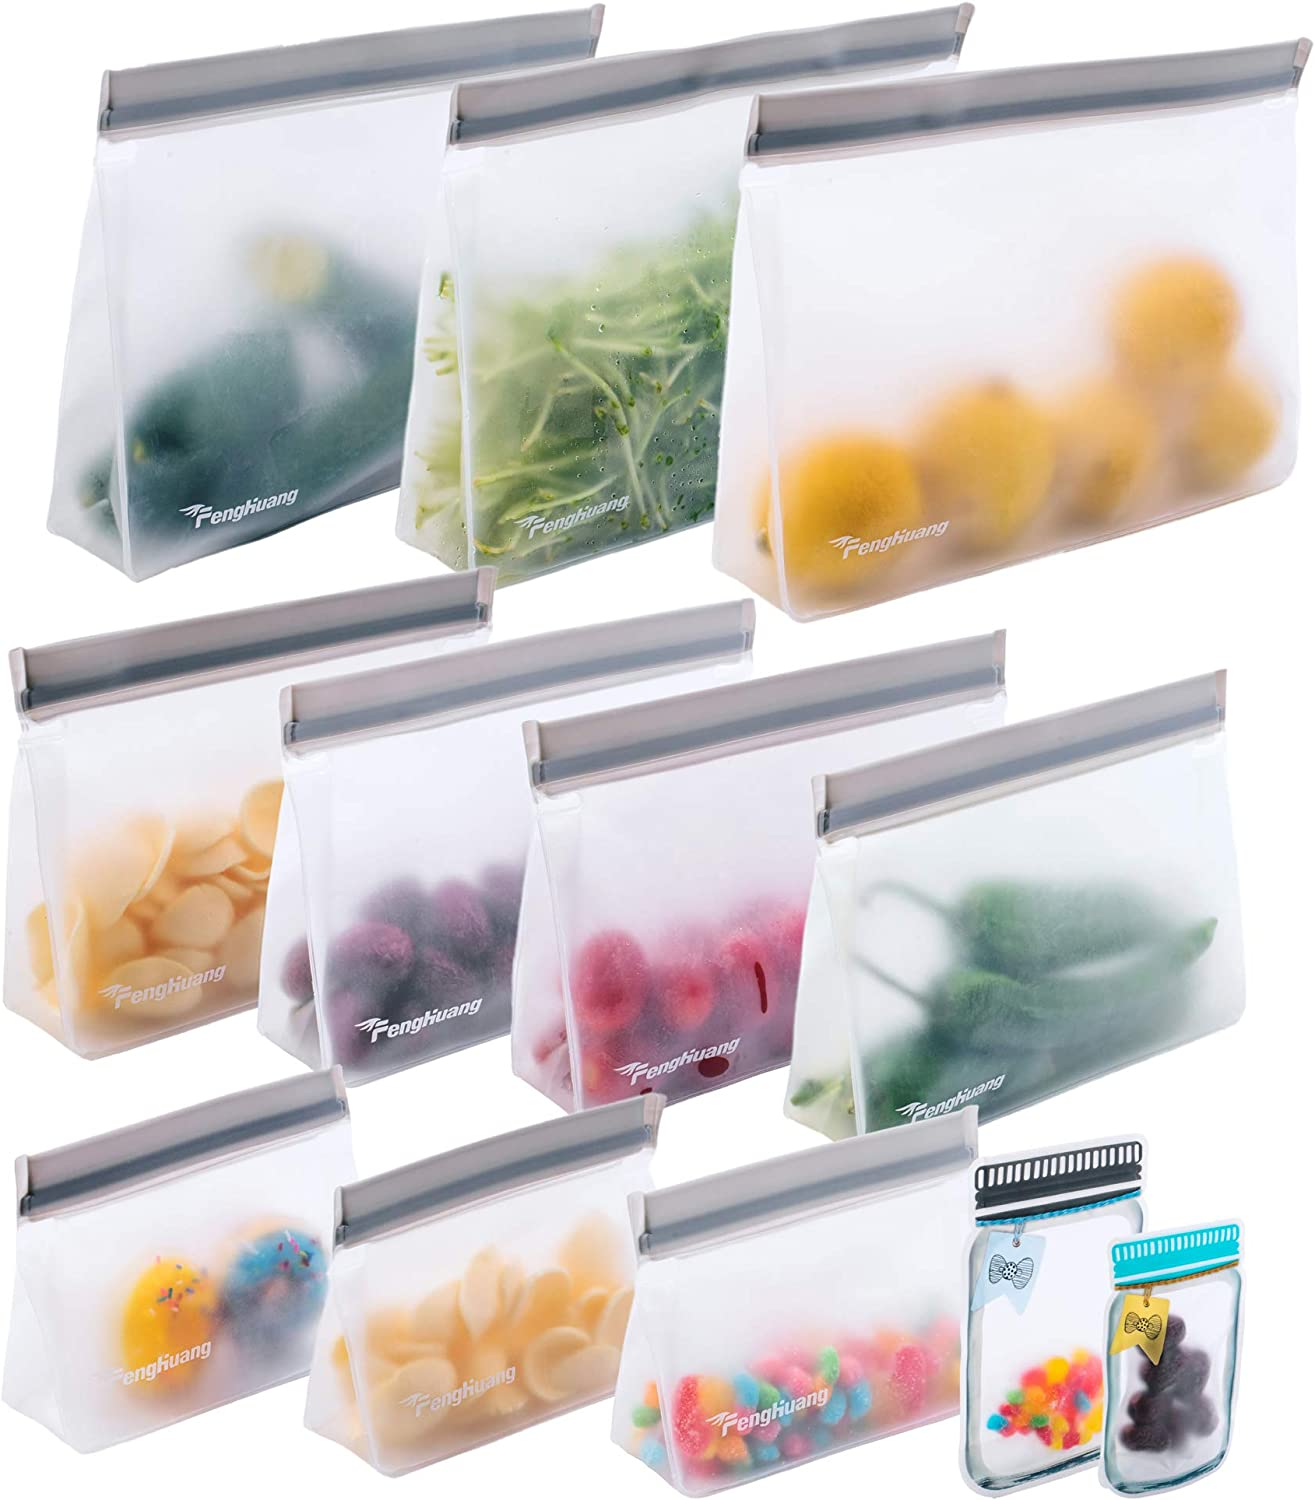 12 Reusable Food Storage Bags,STAND UP Reusable Freezer Bags,Snack,Lunch,Sandwich Bags for kids